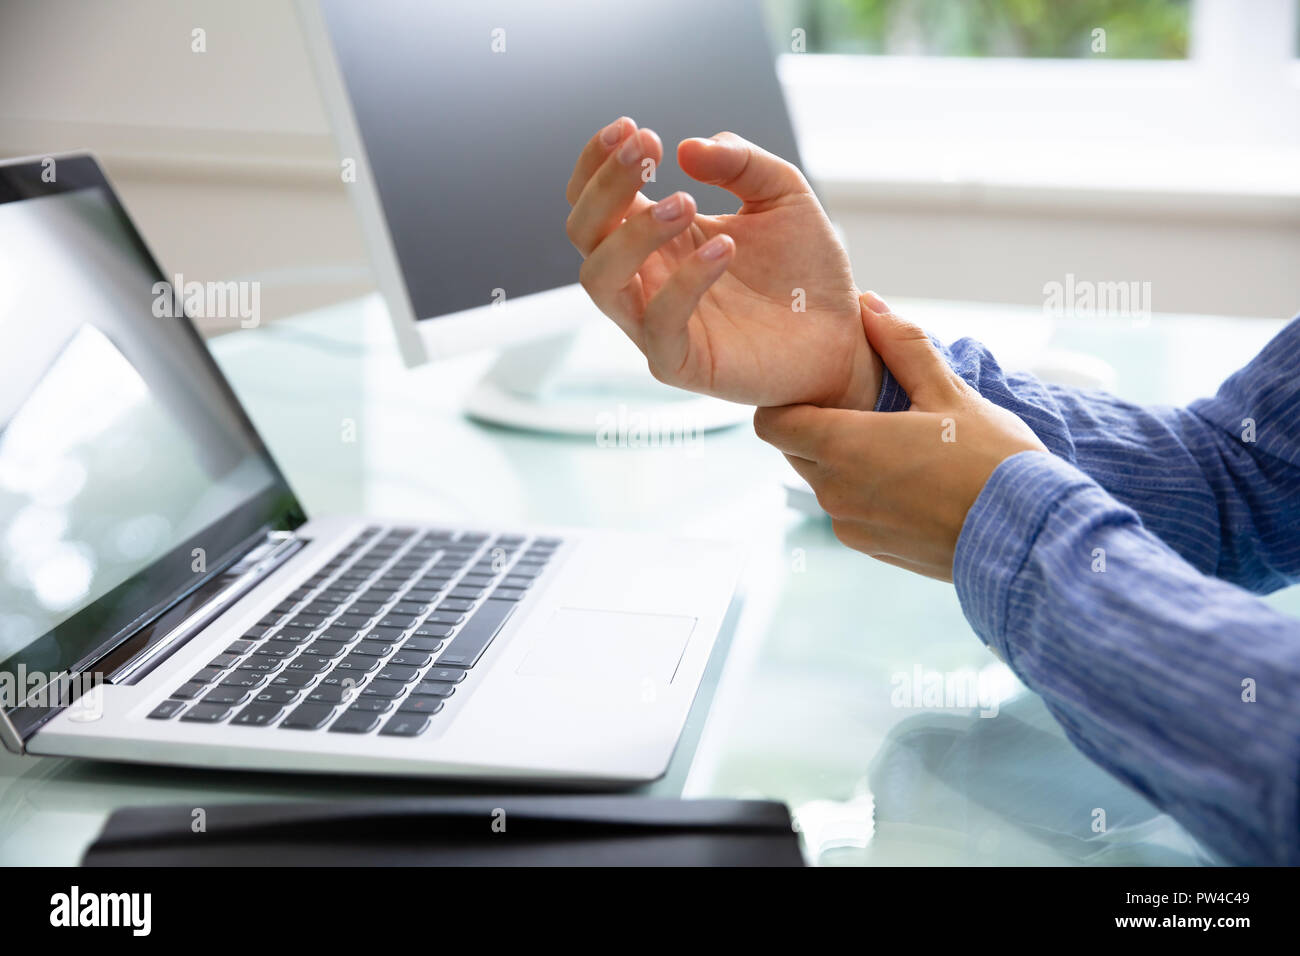 Close-up Of A Businesswoman's Hand Holding Her Painful Wrist With Laptop On Desk - Stock Image